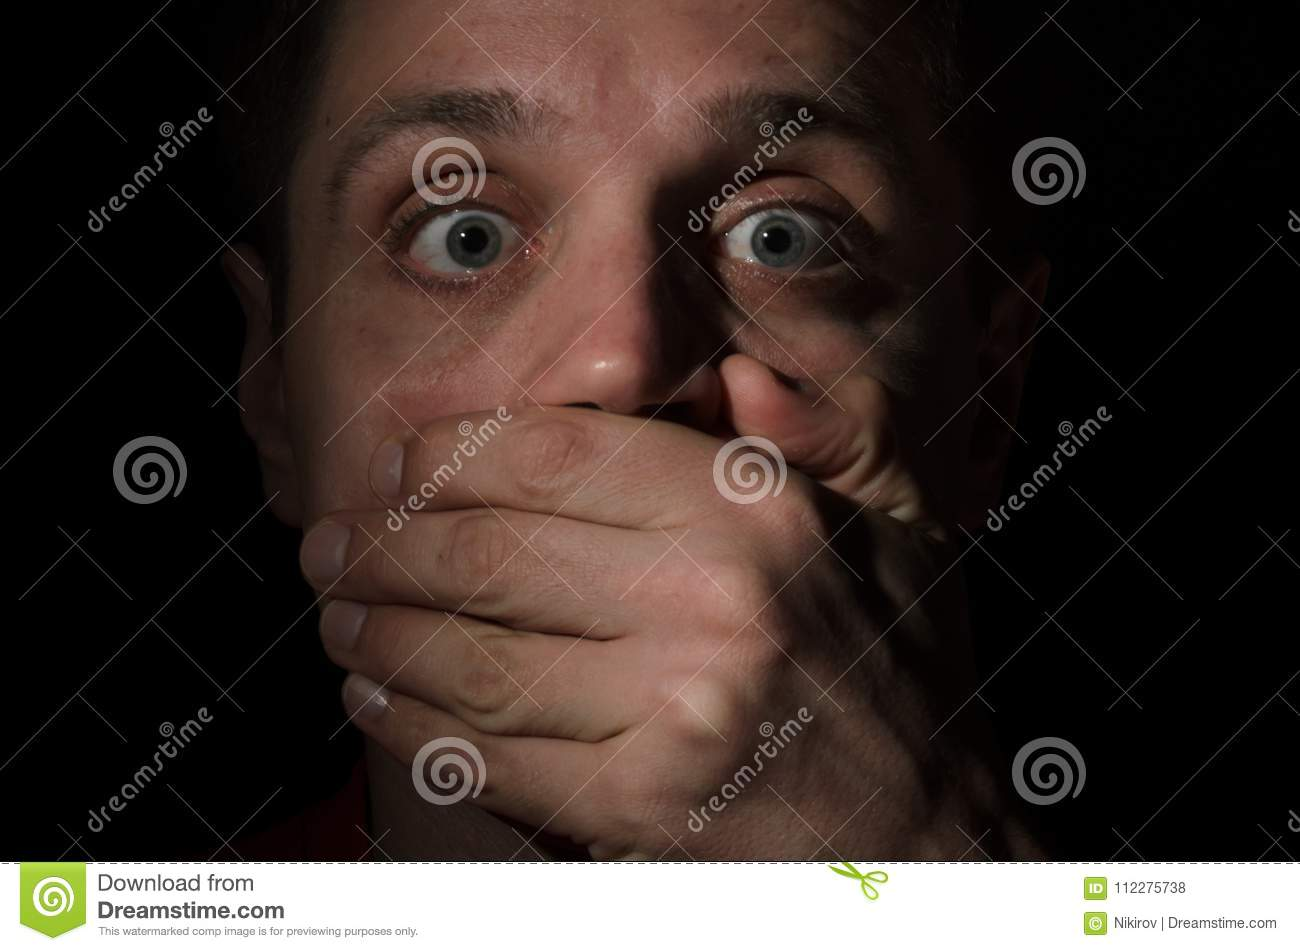 A frightened face of a man with eyes full of horror, who was forcibly covered his mouth with his hand isolated on black background